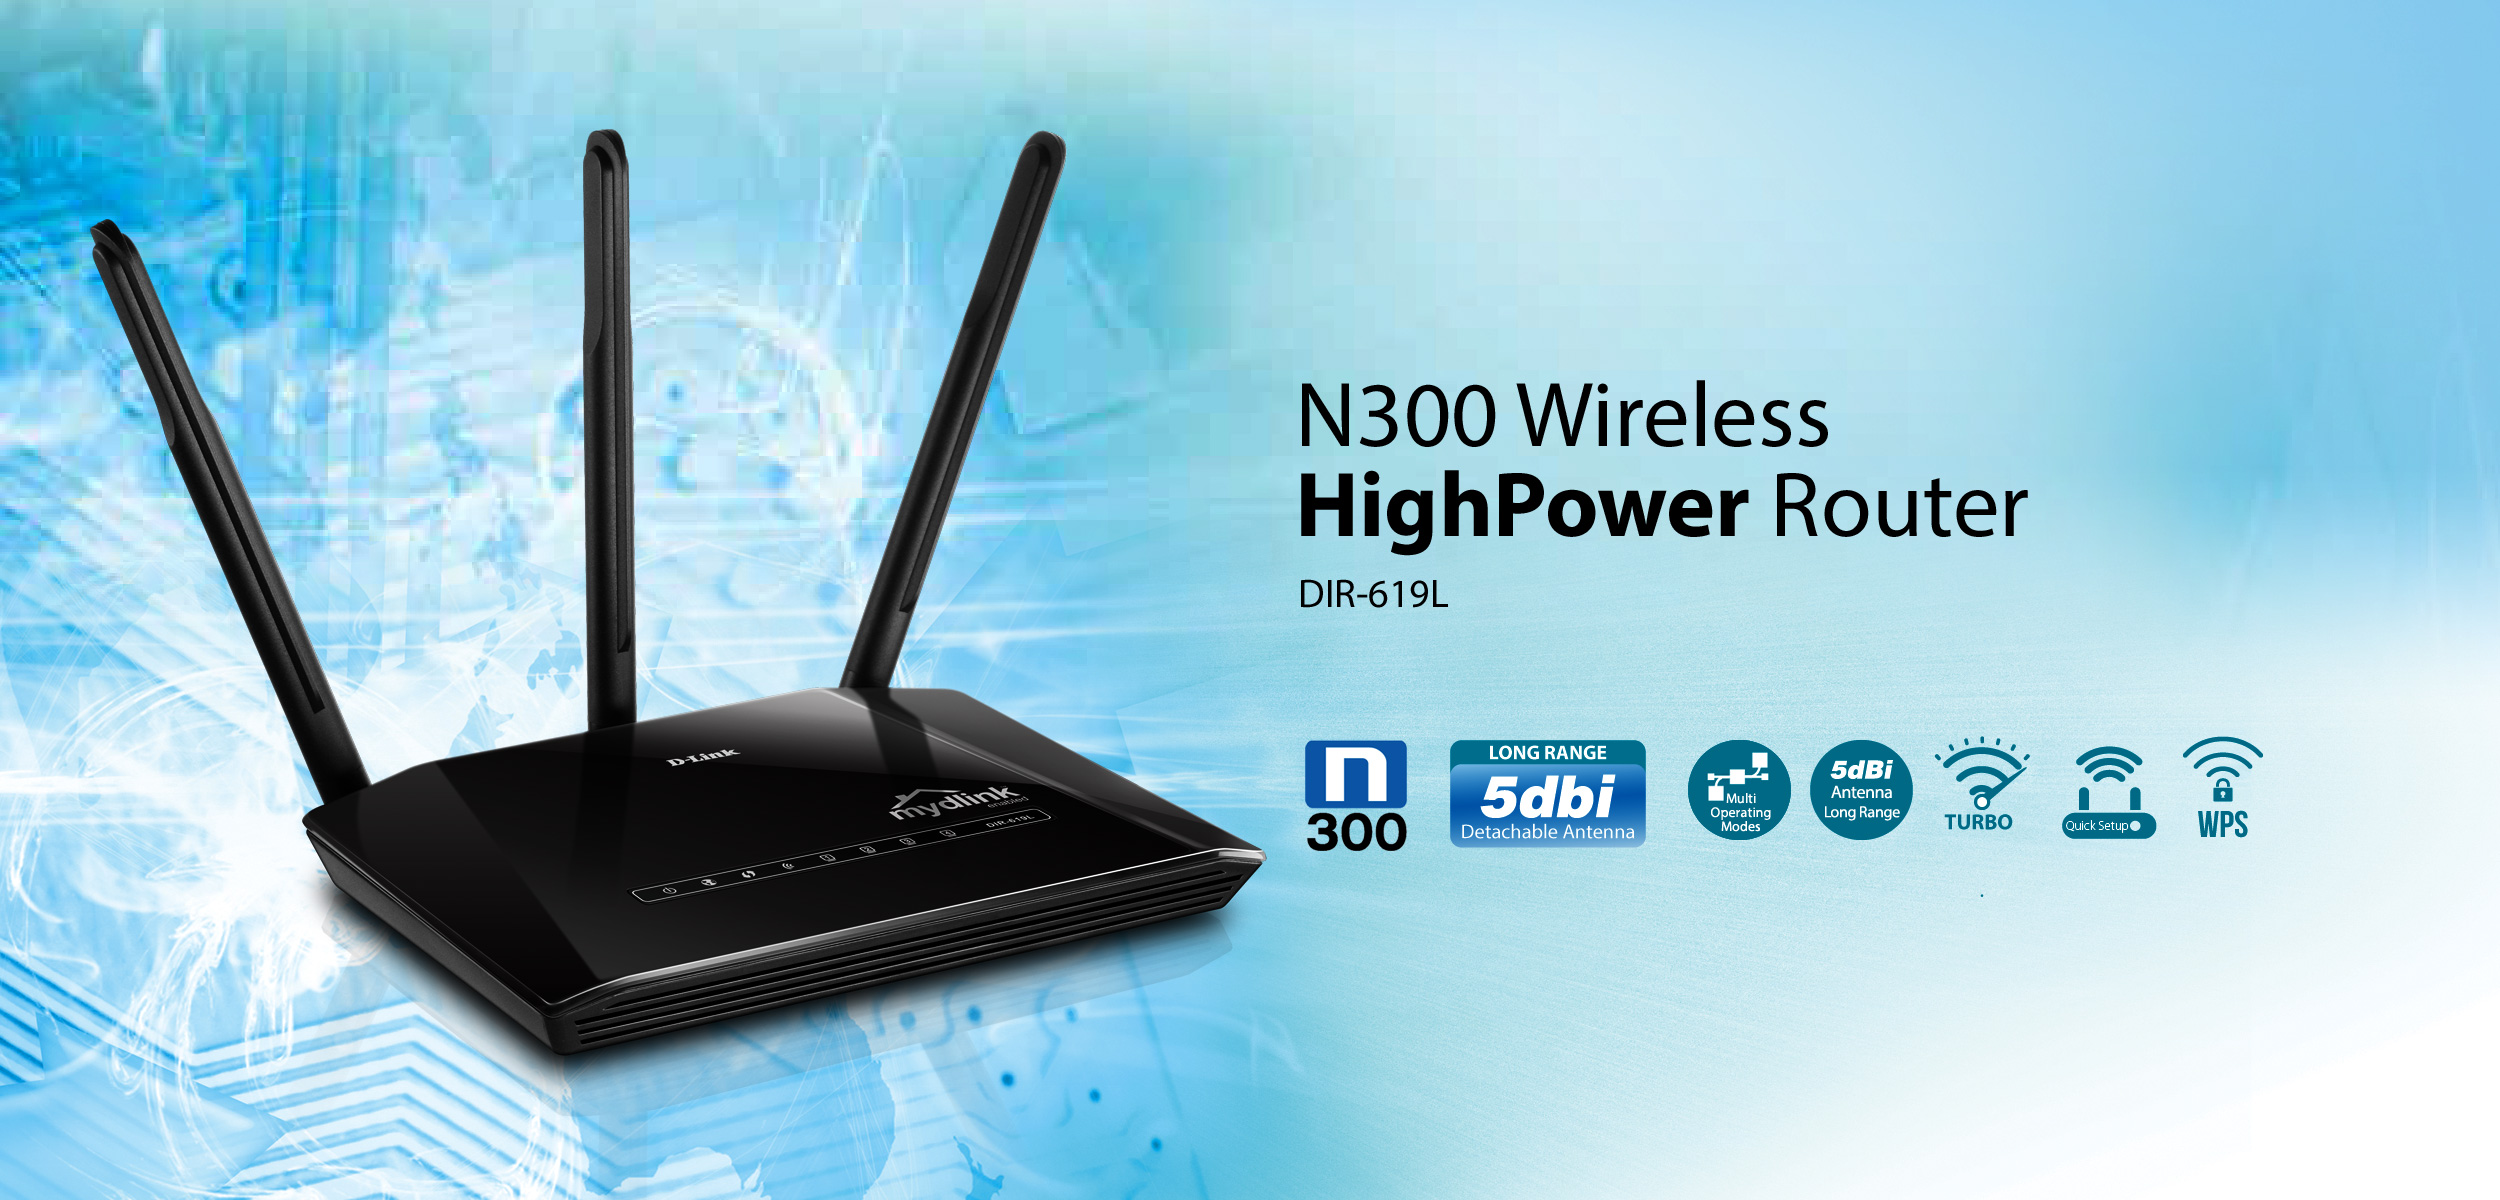 Dir 619l n300 high power wireless router singapore sciox Images